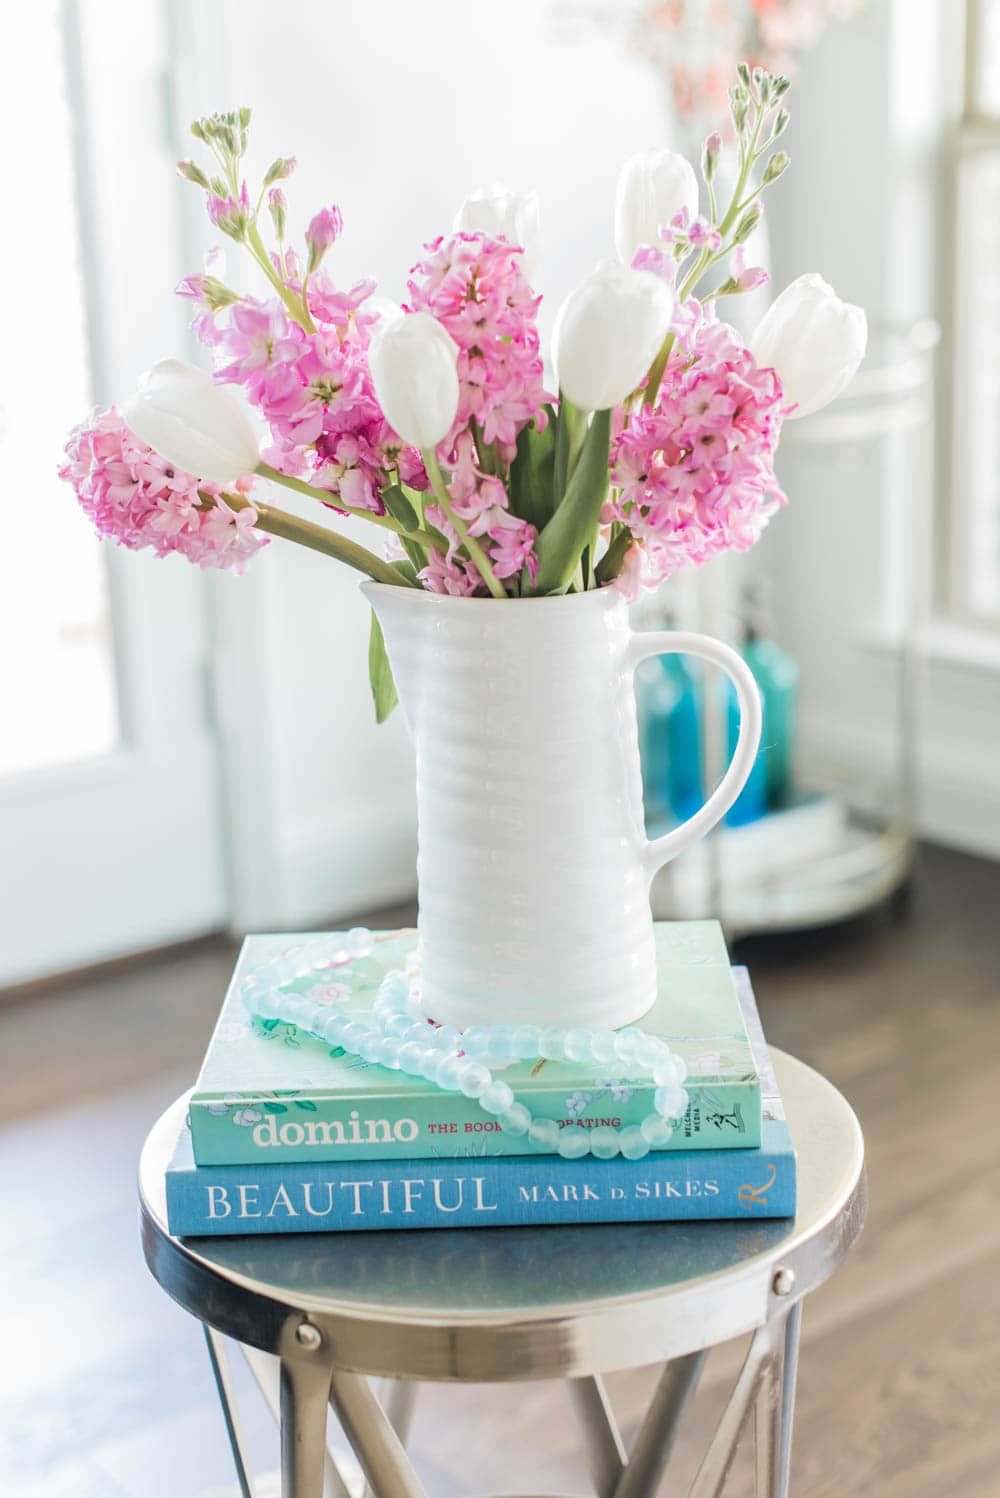 Add colorful books to your spring decor. #ABlissfulNest #springideas #springdecor